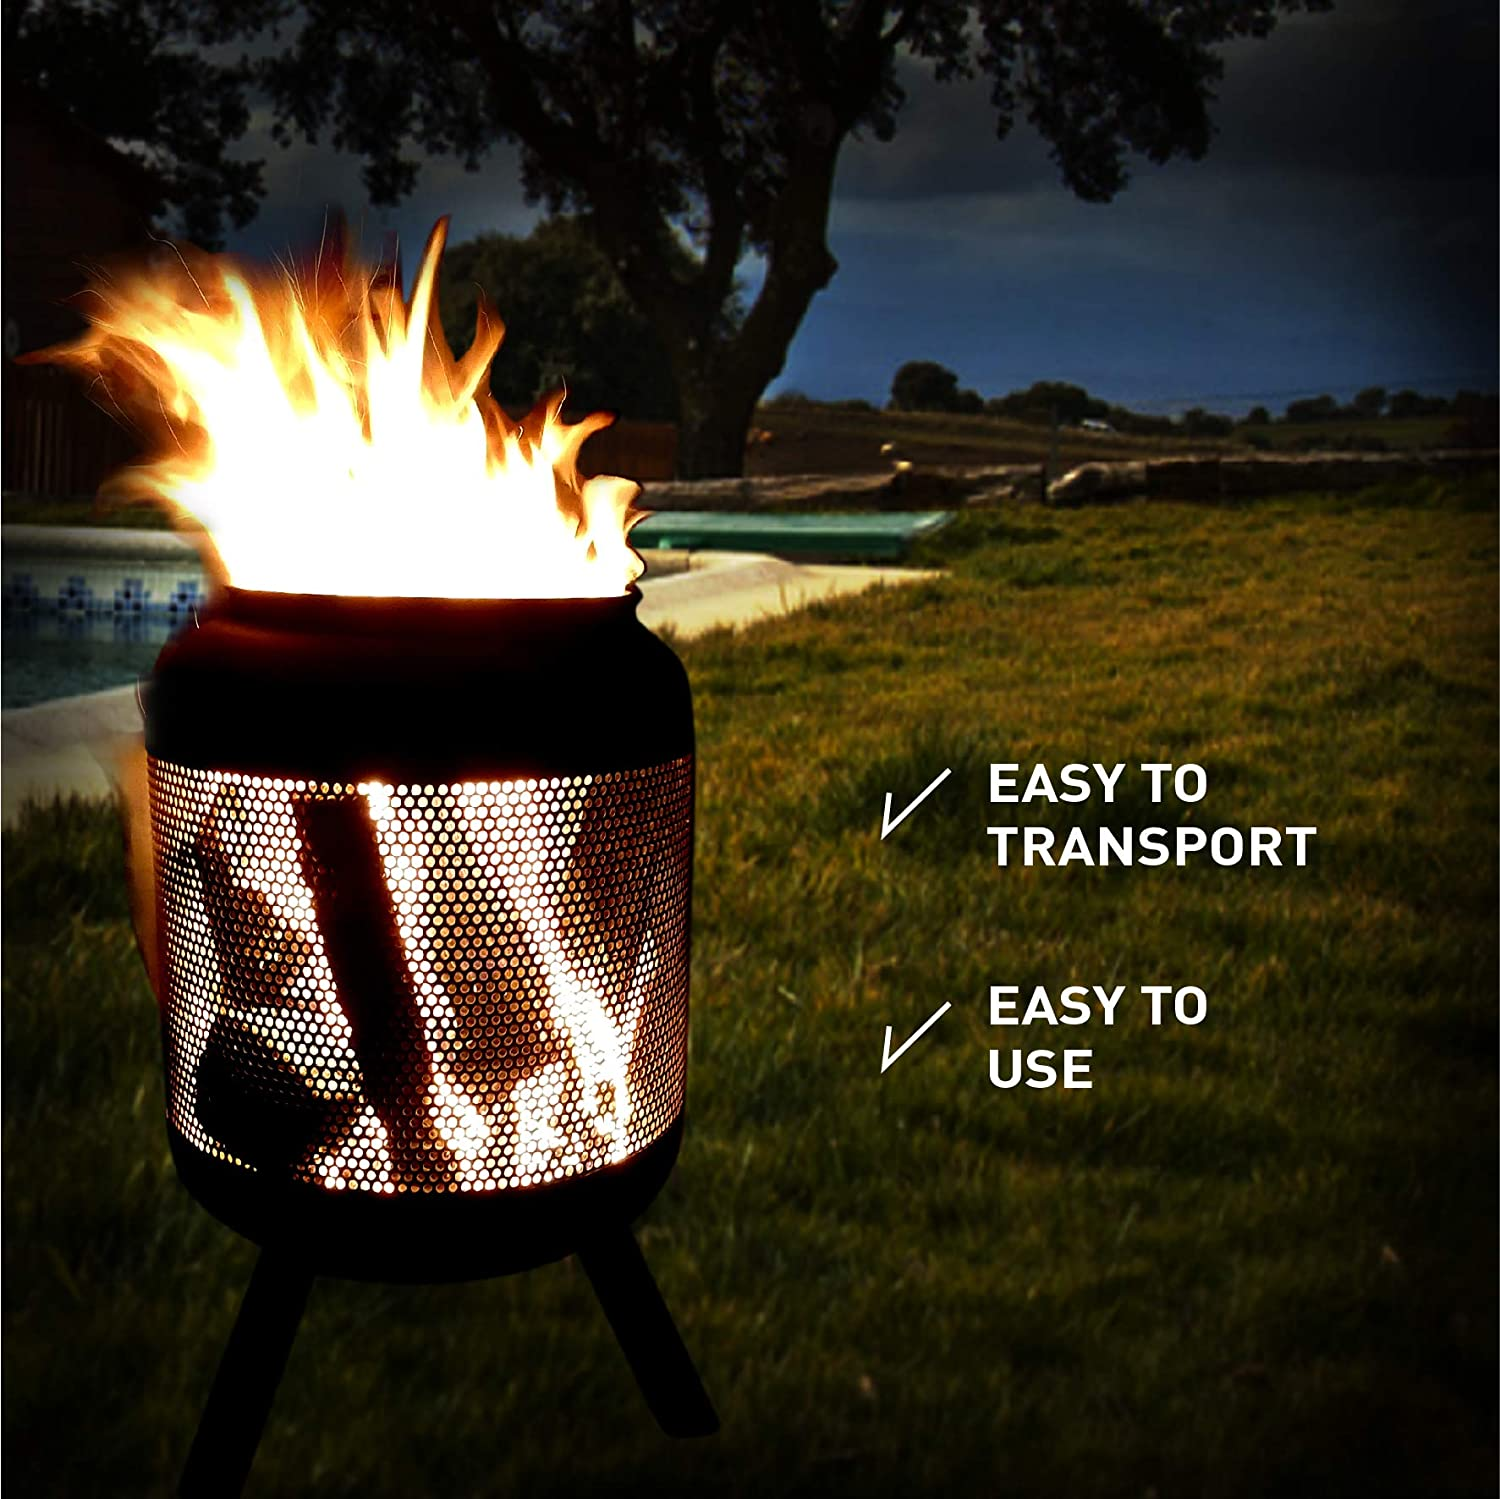 EasyGoProducts EGP-GARD-021 EasyGo Product Camping Patio Outdoor Fire Pit – Washing Machine Shaped, Steel with Black Finish